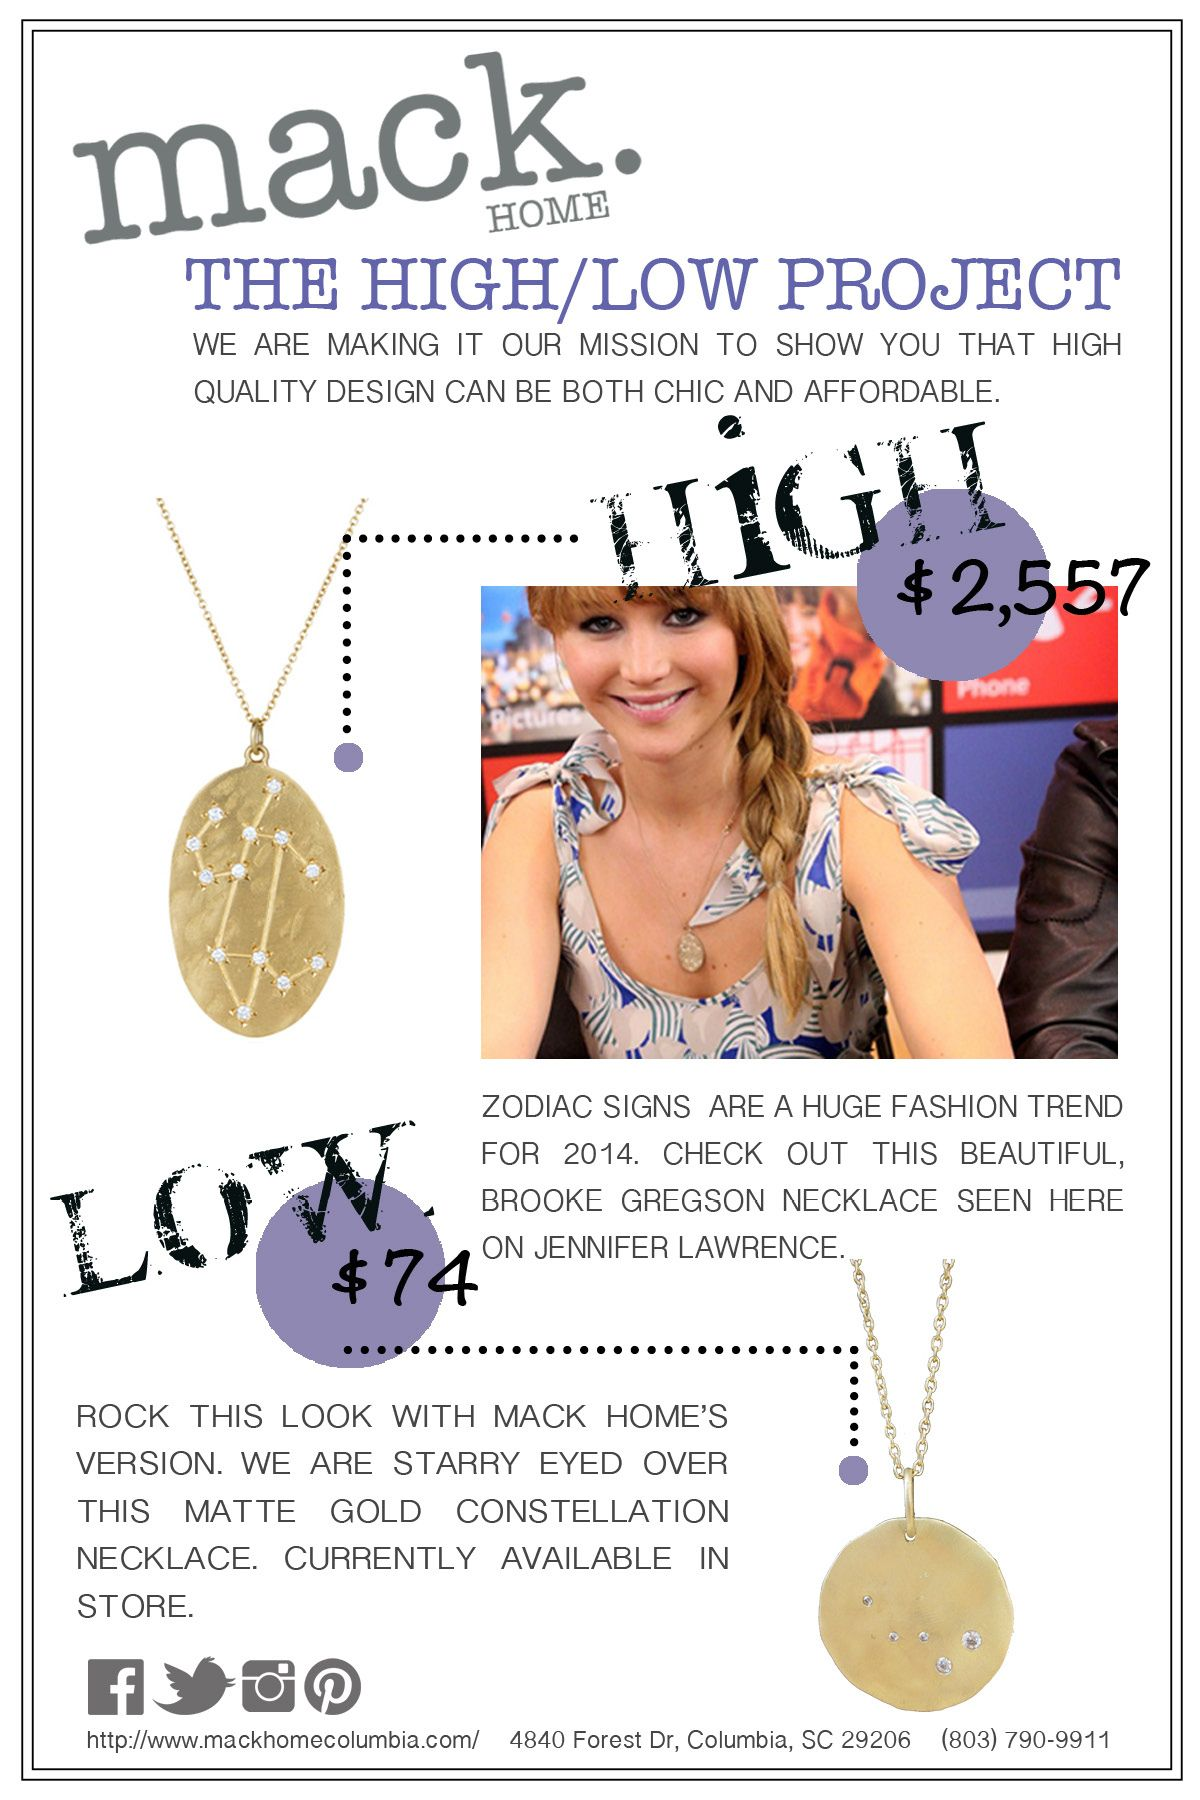 MACK Home's High/Low Project: Seeing Stars — MACK Home is loving Zodiac necklaces right now. High: Brooke Gregson Zodiac necklace (seen on J.Law) // Low: strikingly similar MACK Home version, available in-store at only $74